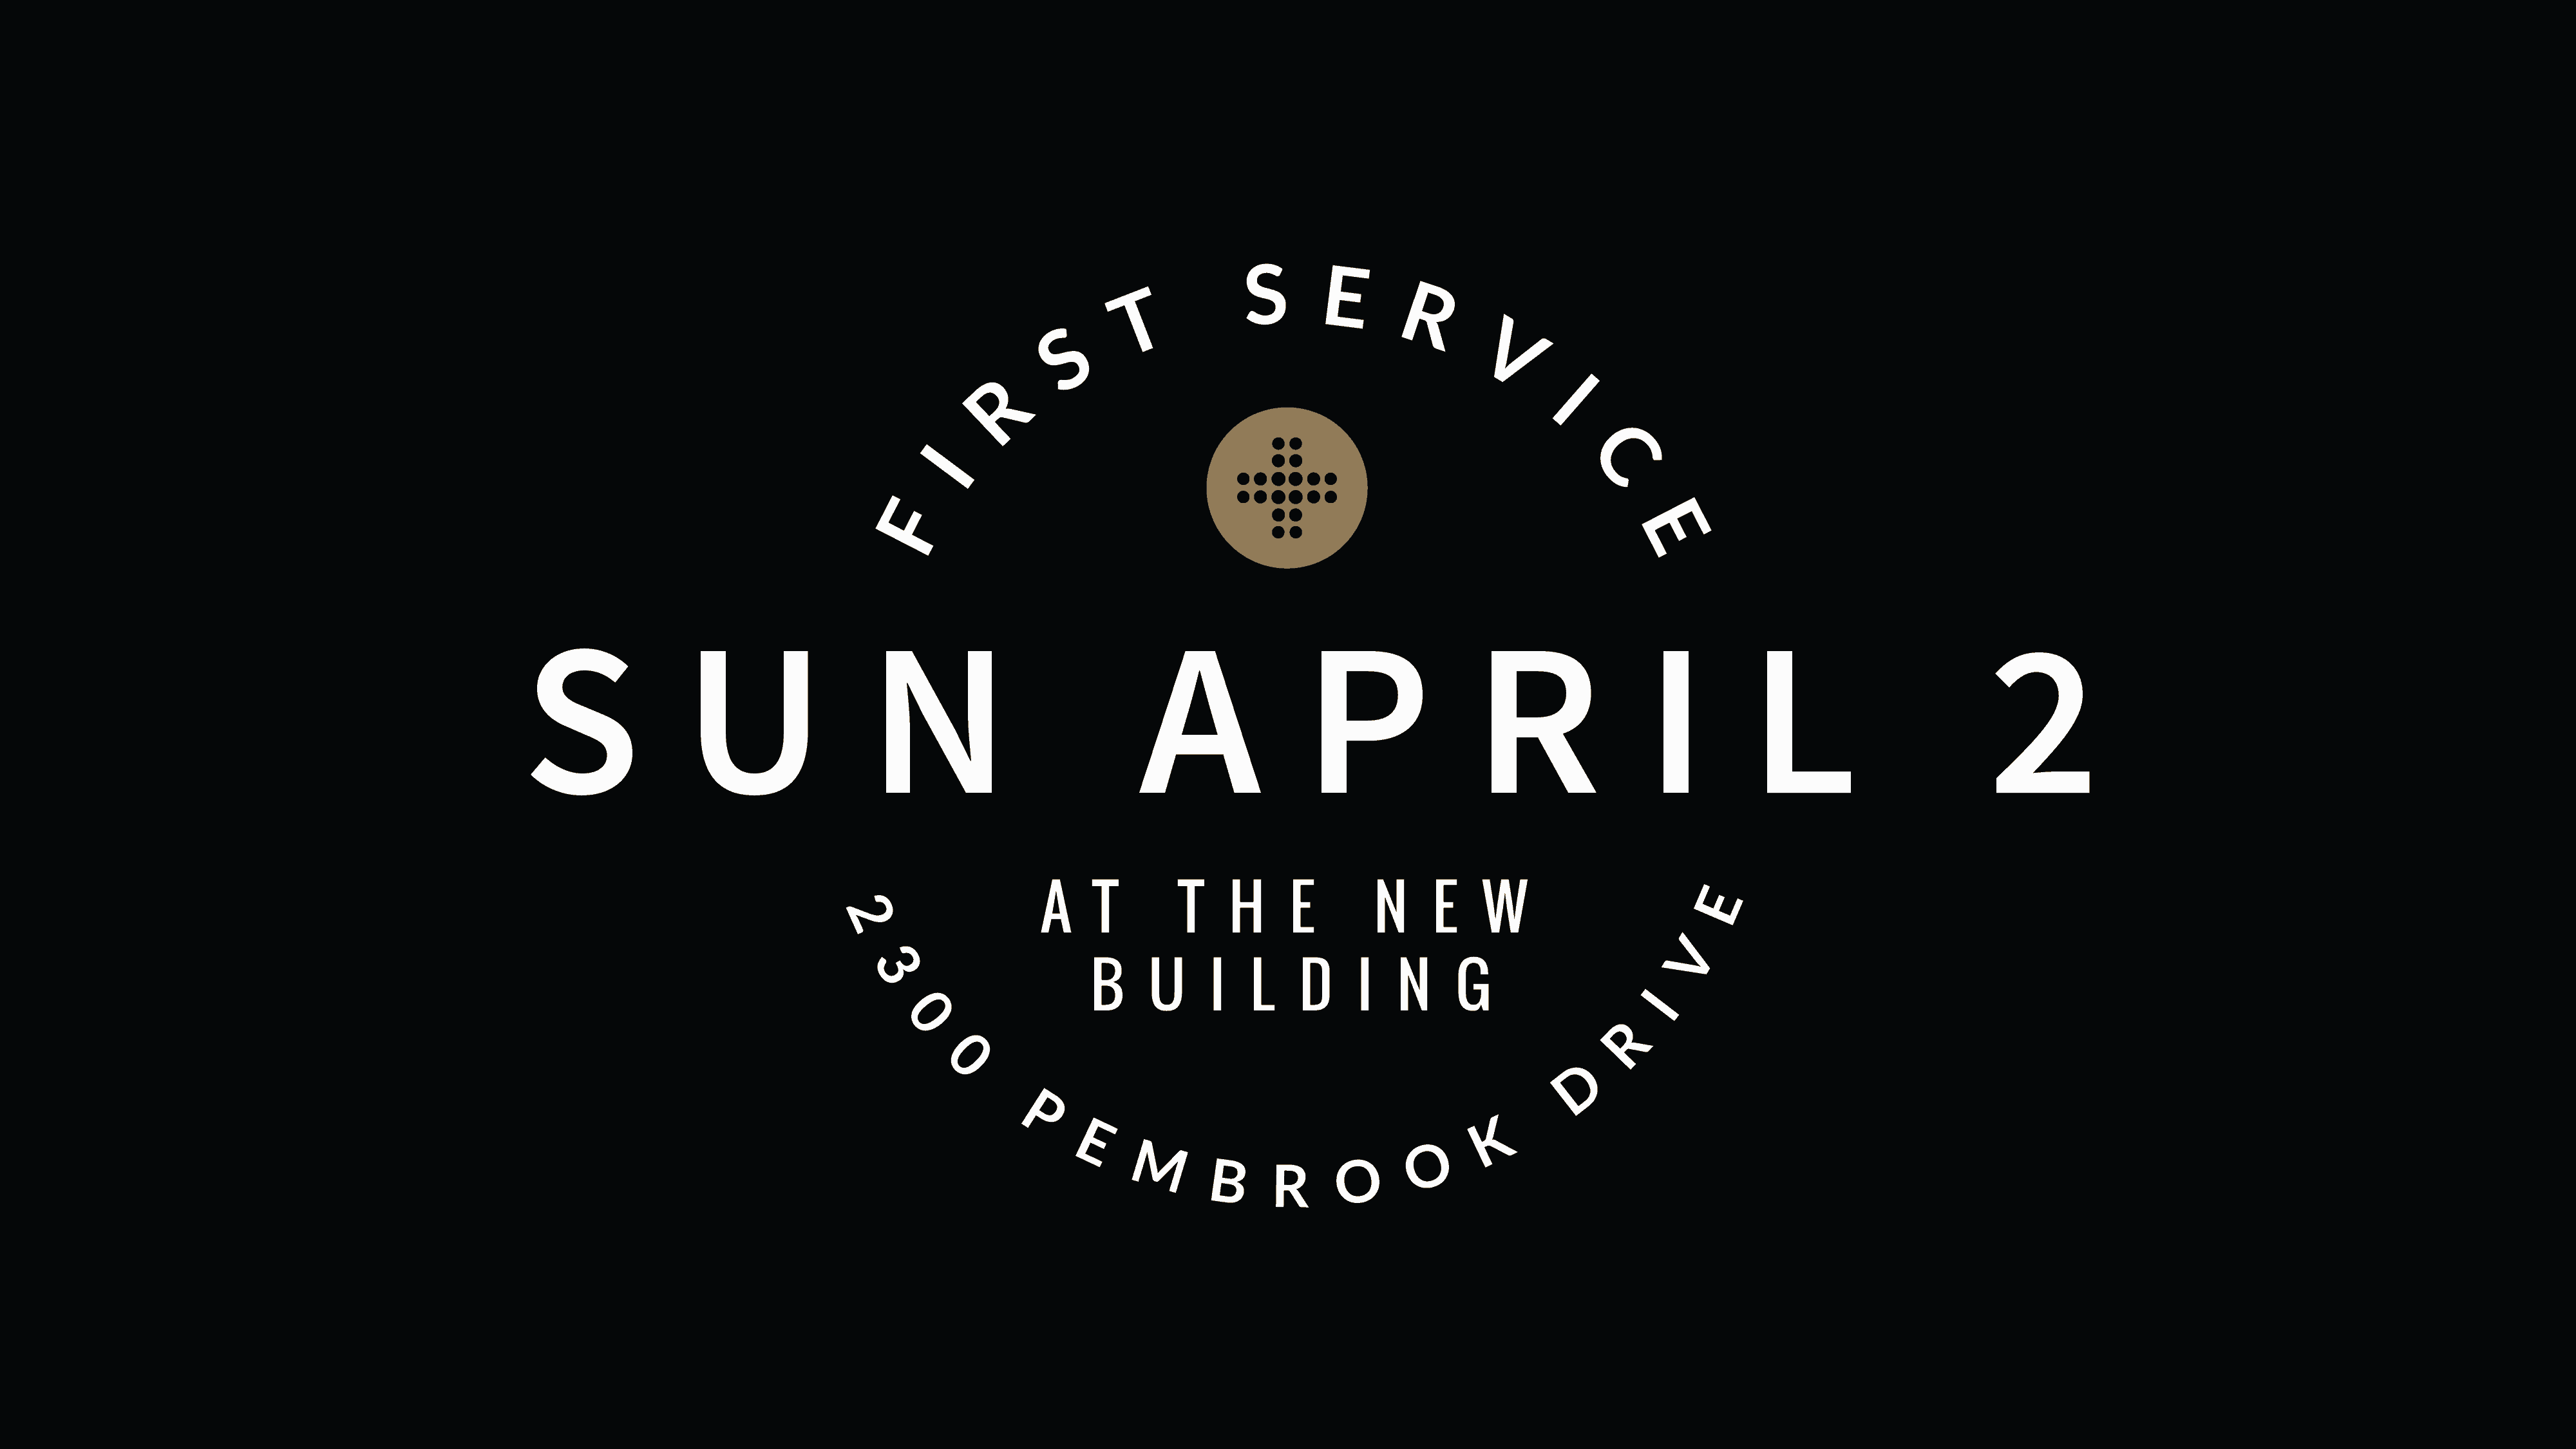 First Service at Pembrook